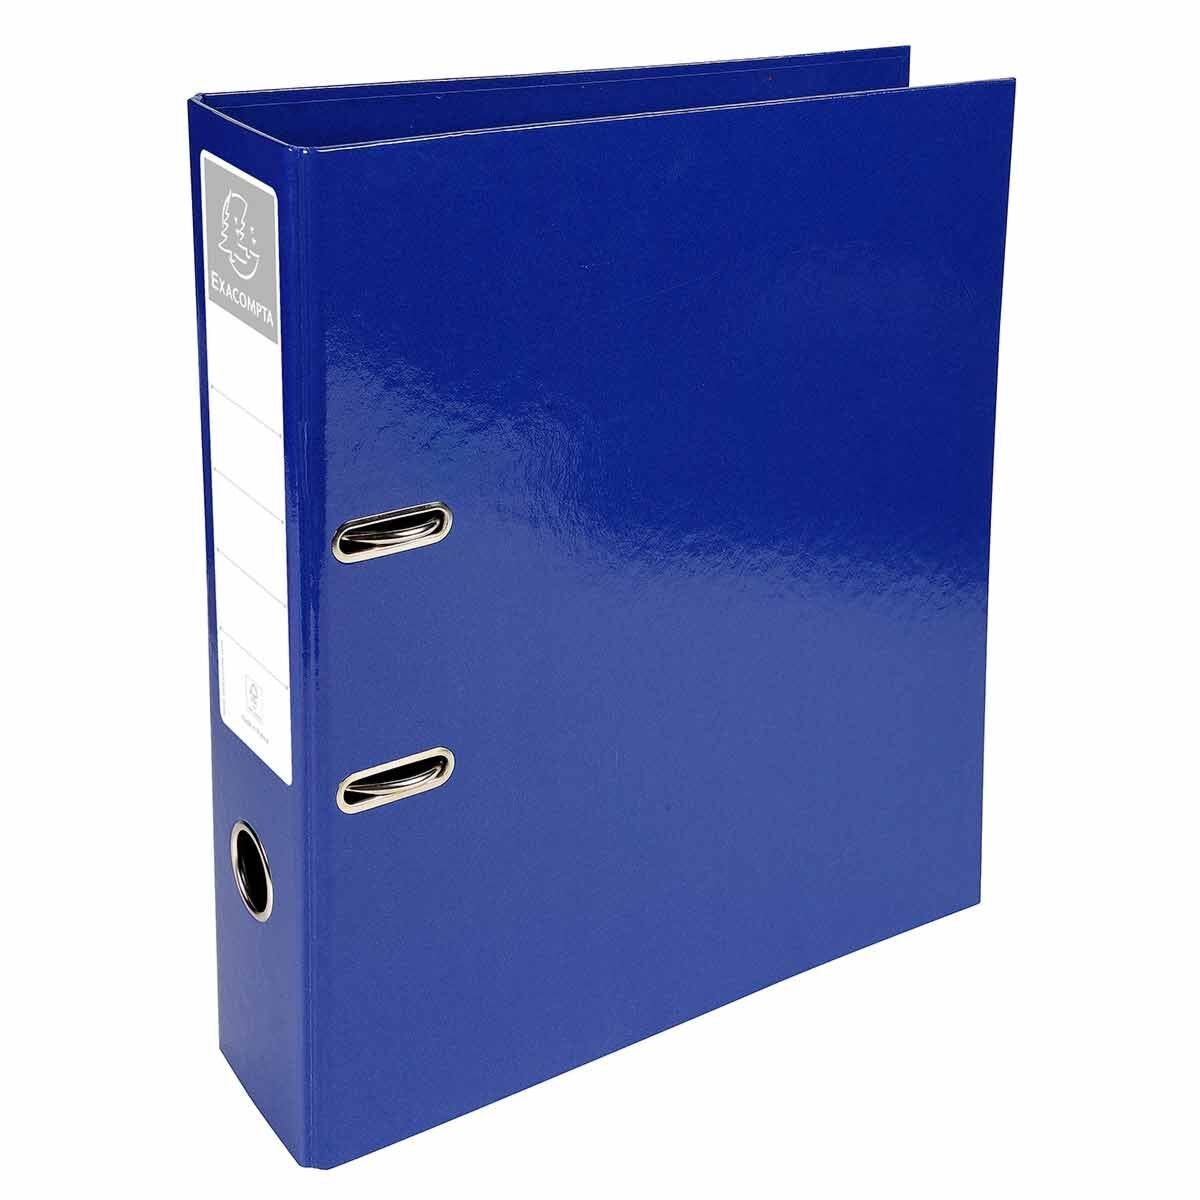 Exacompta Iderama PremTouch Lever Arch File A4 70mm Pack of 10 Dark Blue